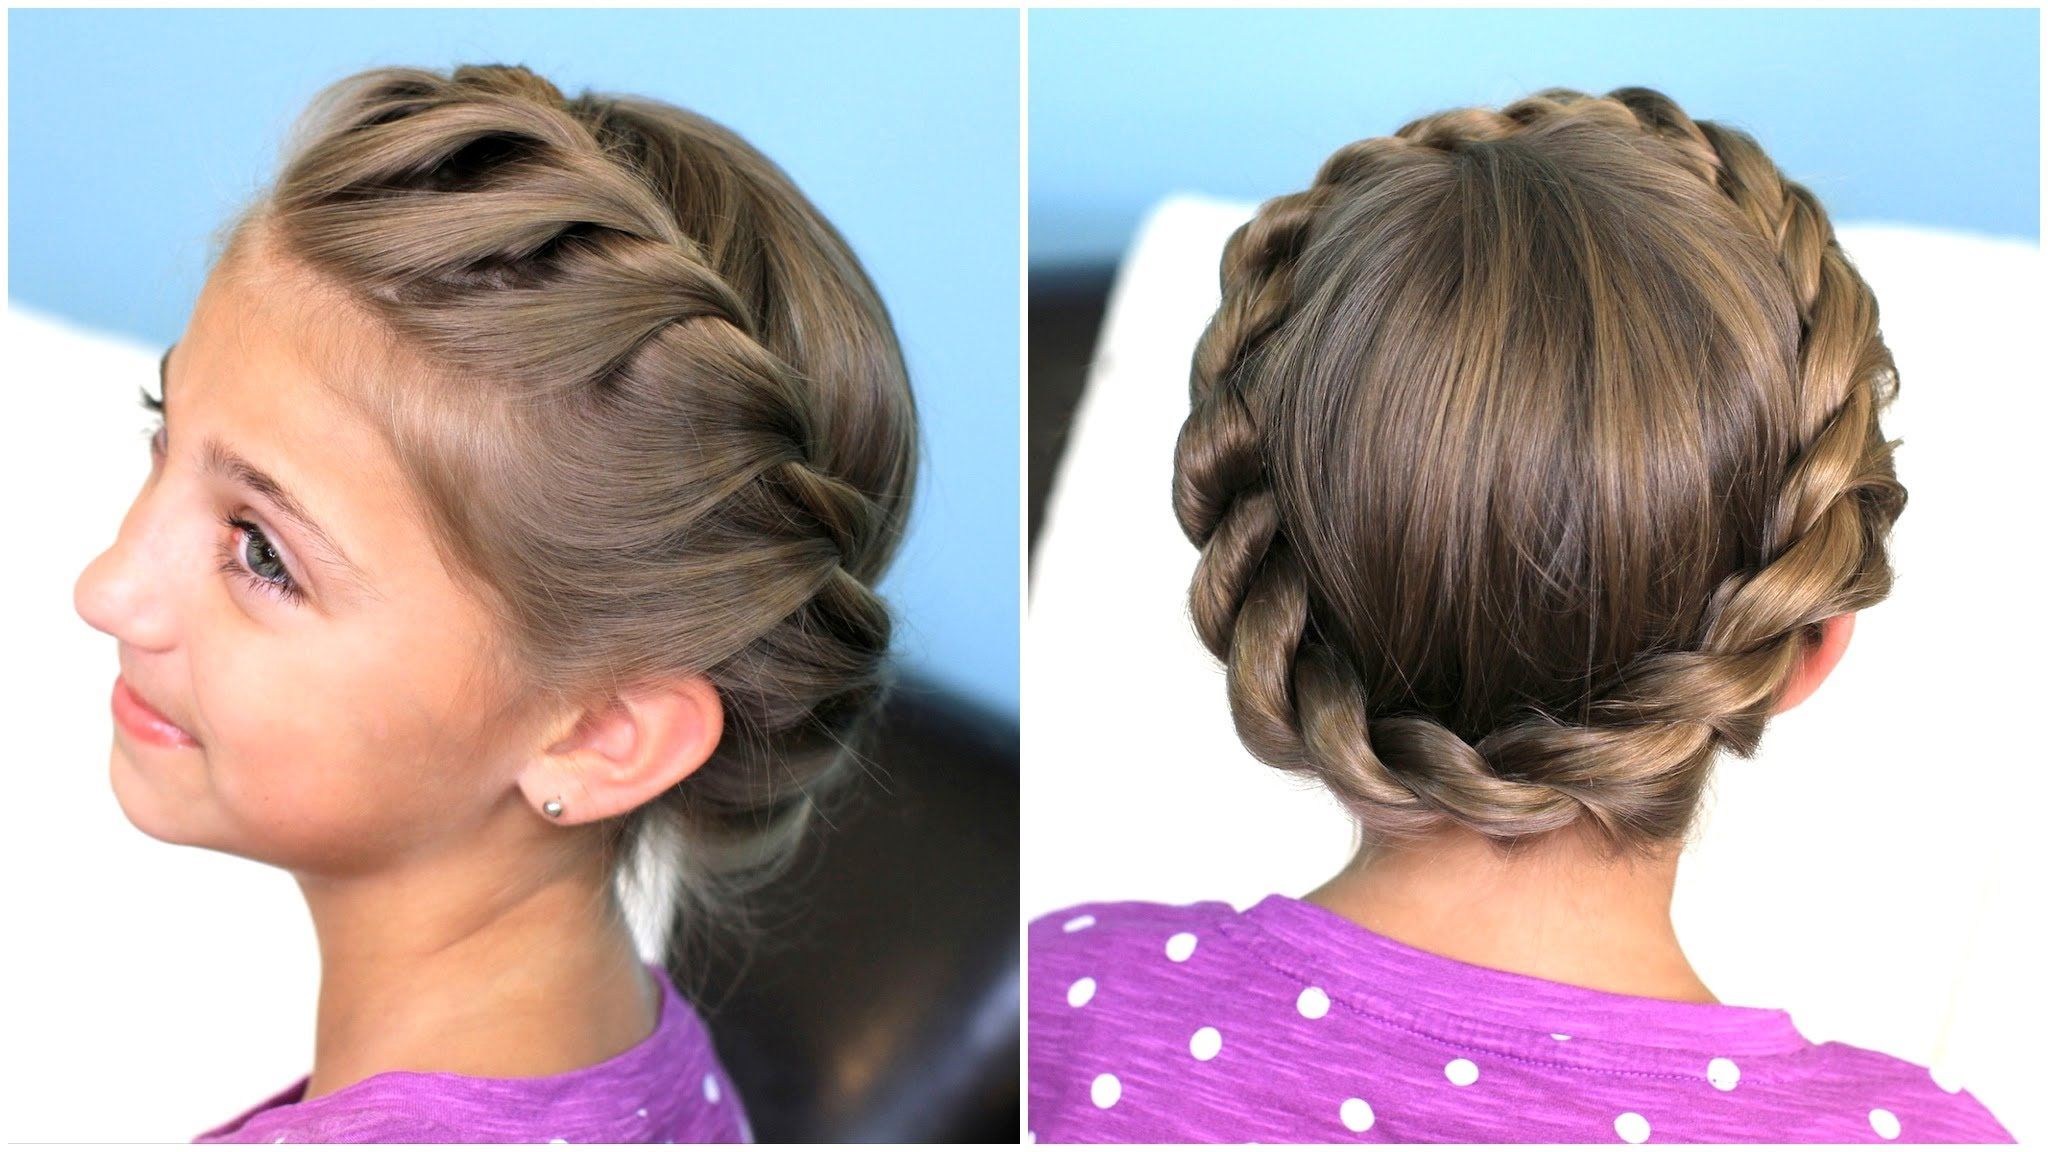 Twist Hairstyle Inspiration How To Create A Crown Twist Braid  Updo Hairstyles  Hair 2